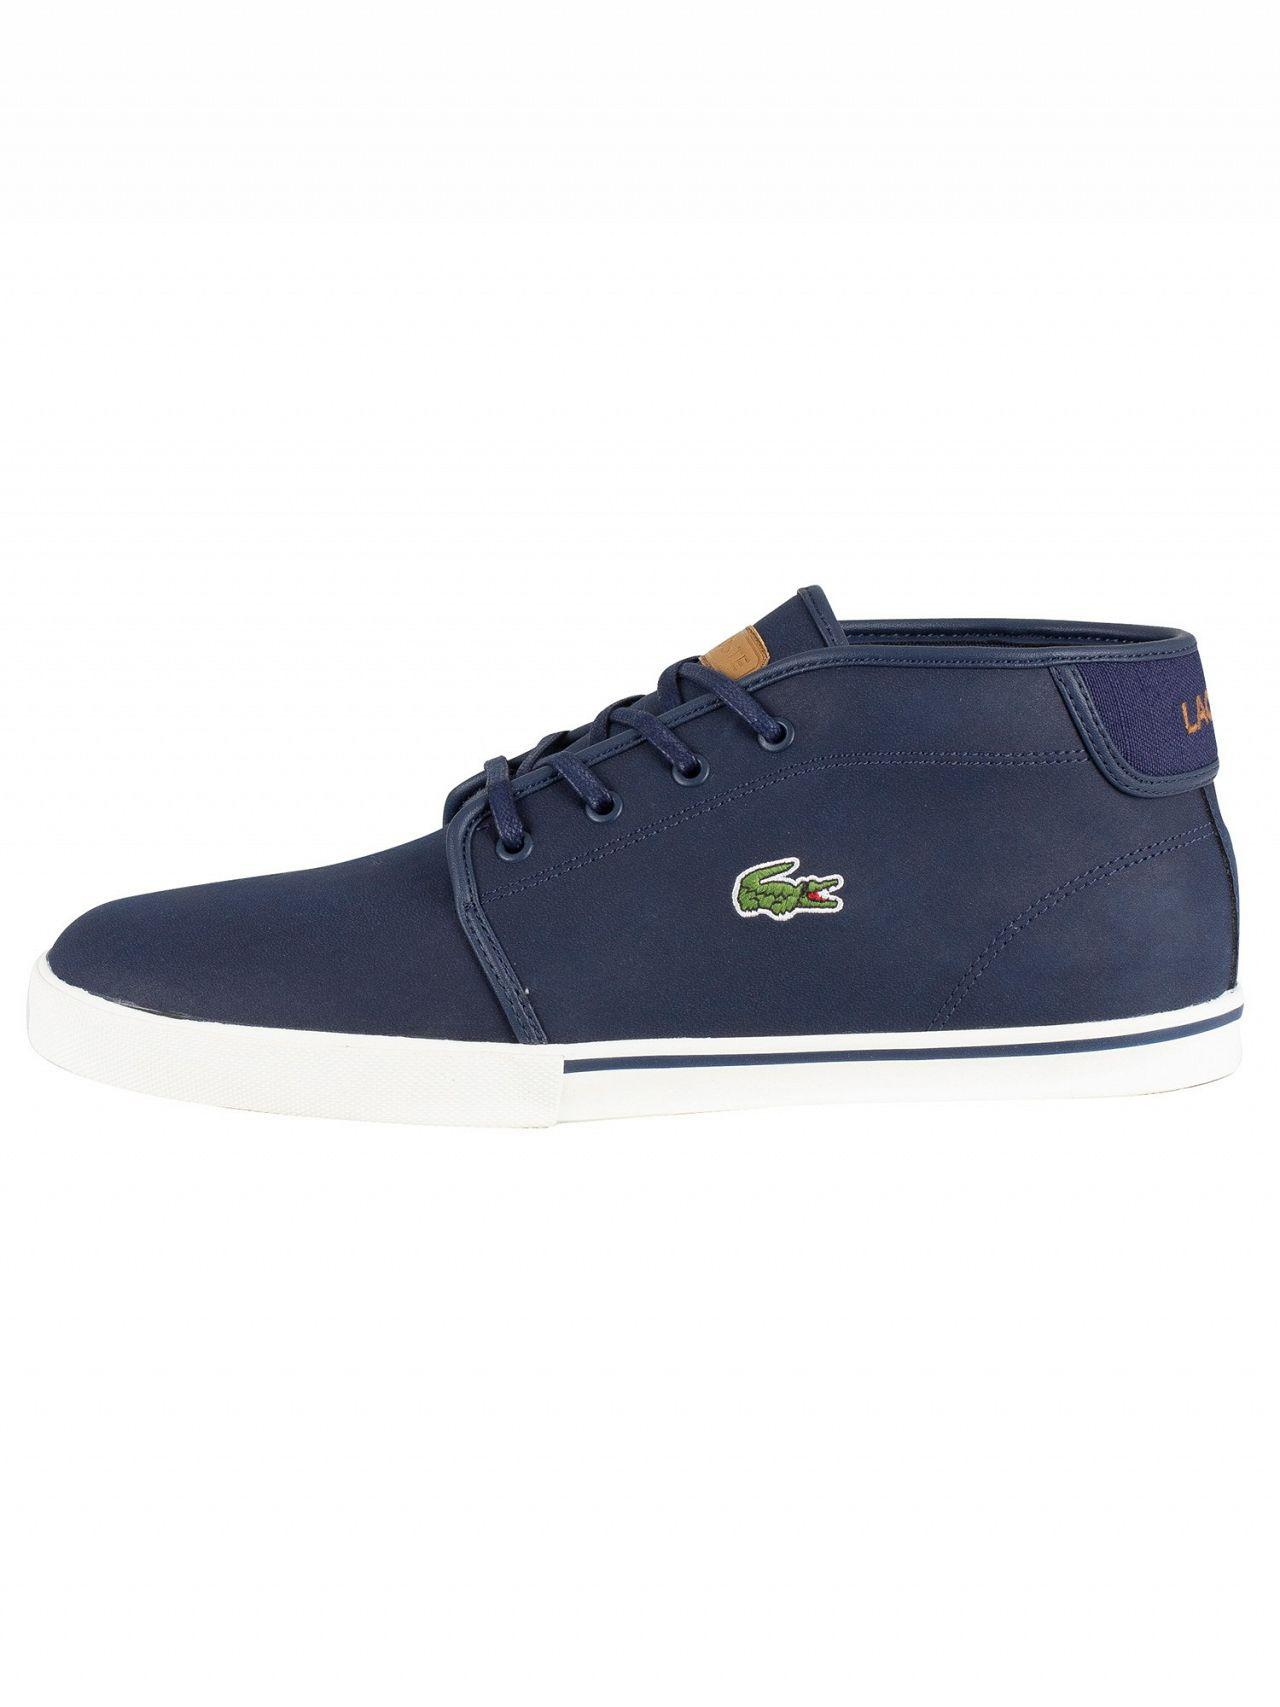 53ce6bb7172e Lyst - Lacoste Navy light Brown Ampthill 119 1 Leather Trainers in Blue for  Men